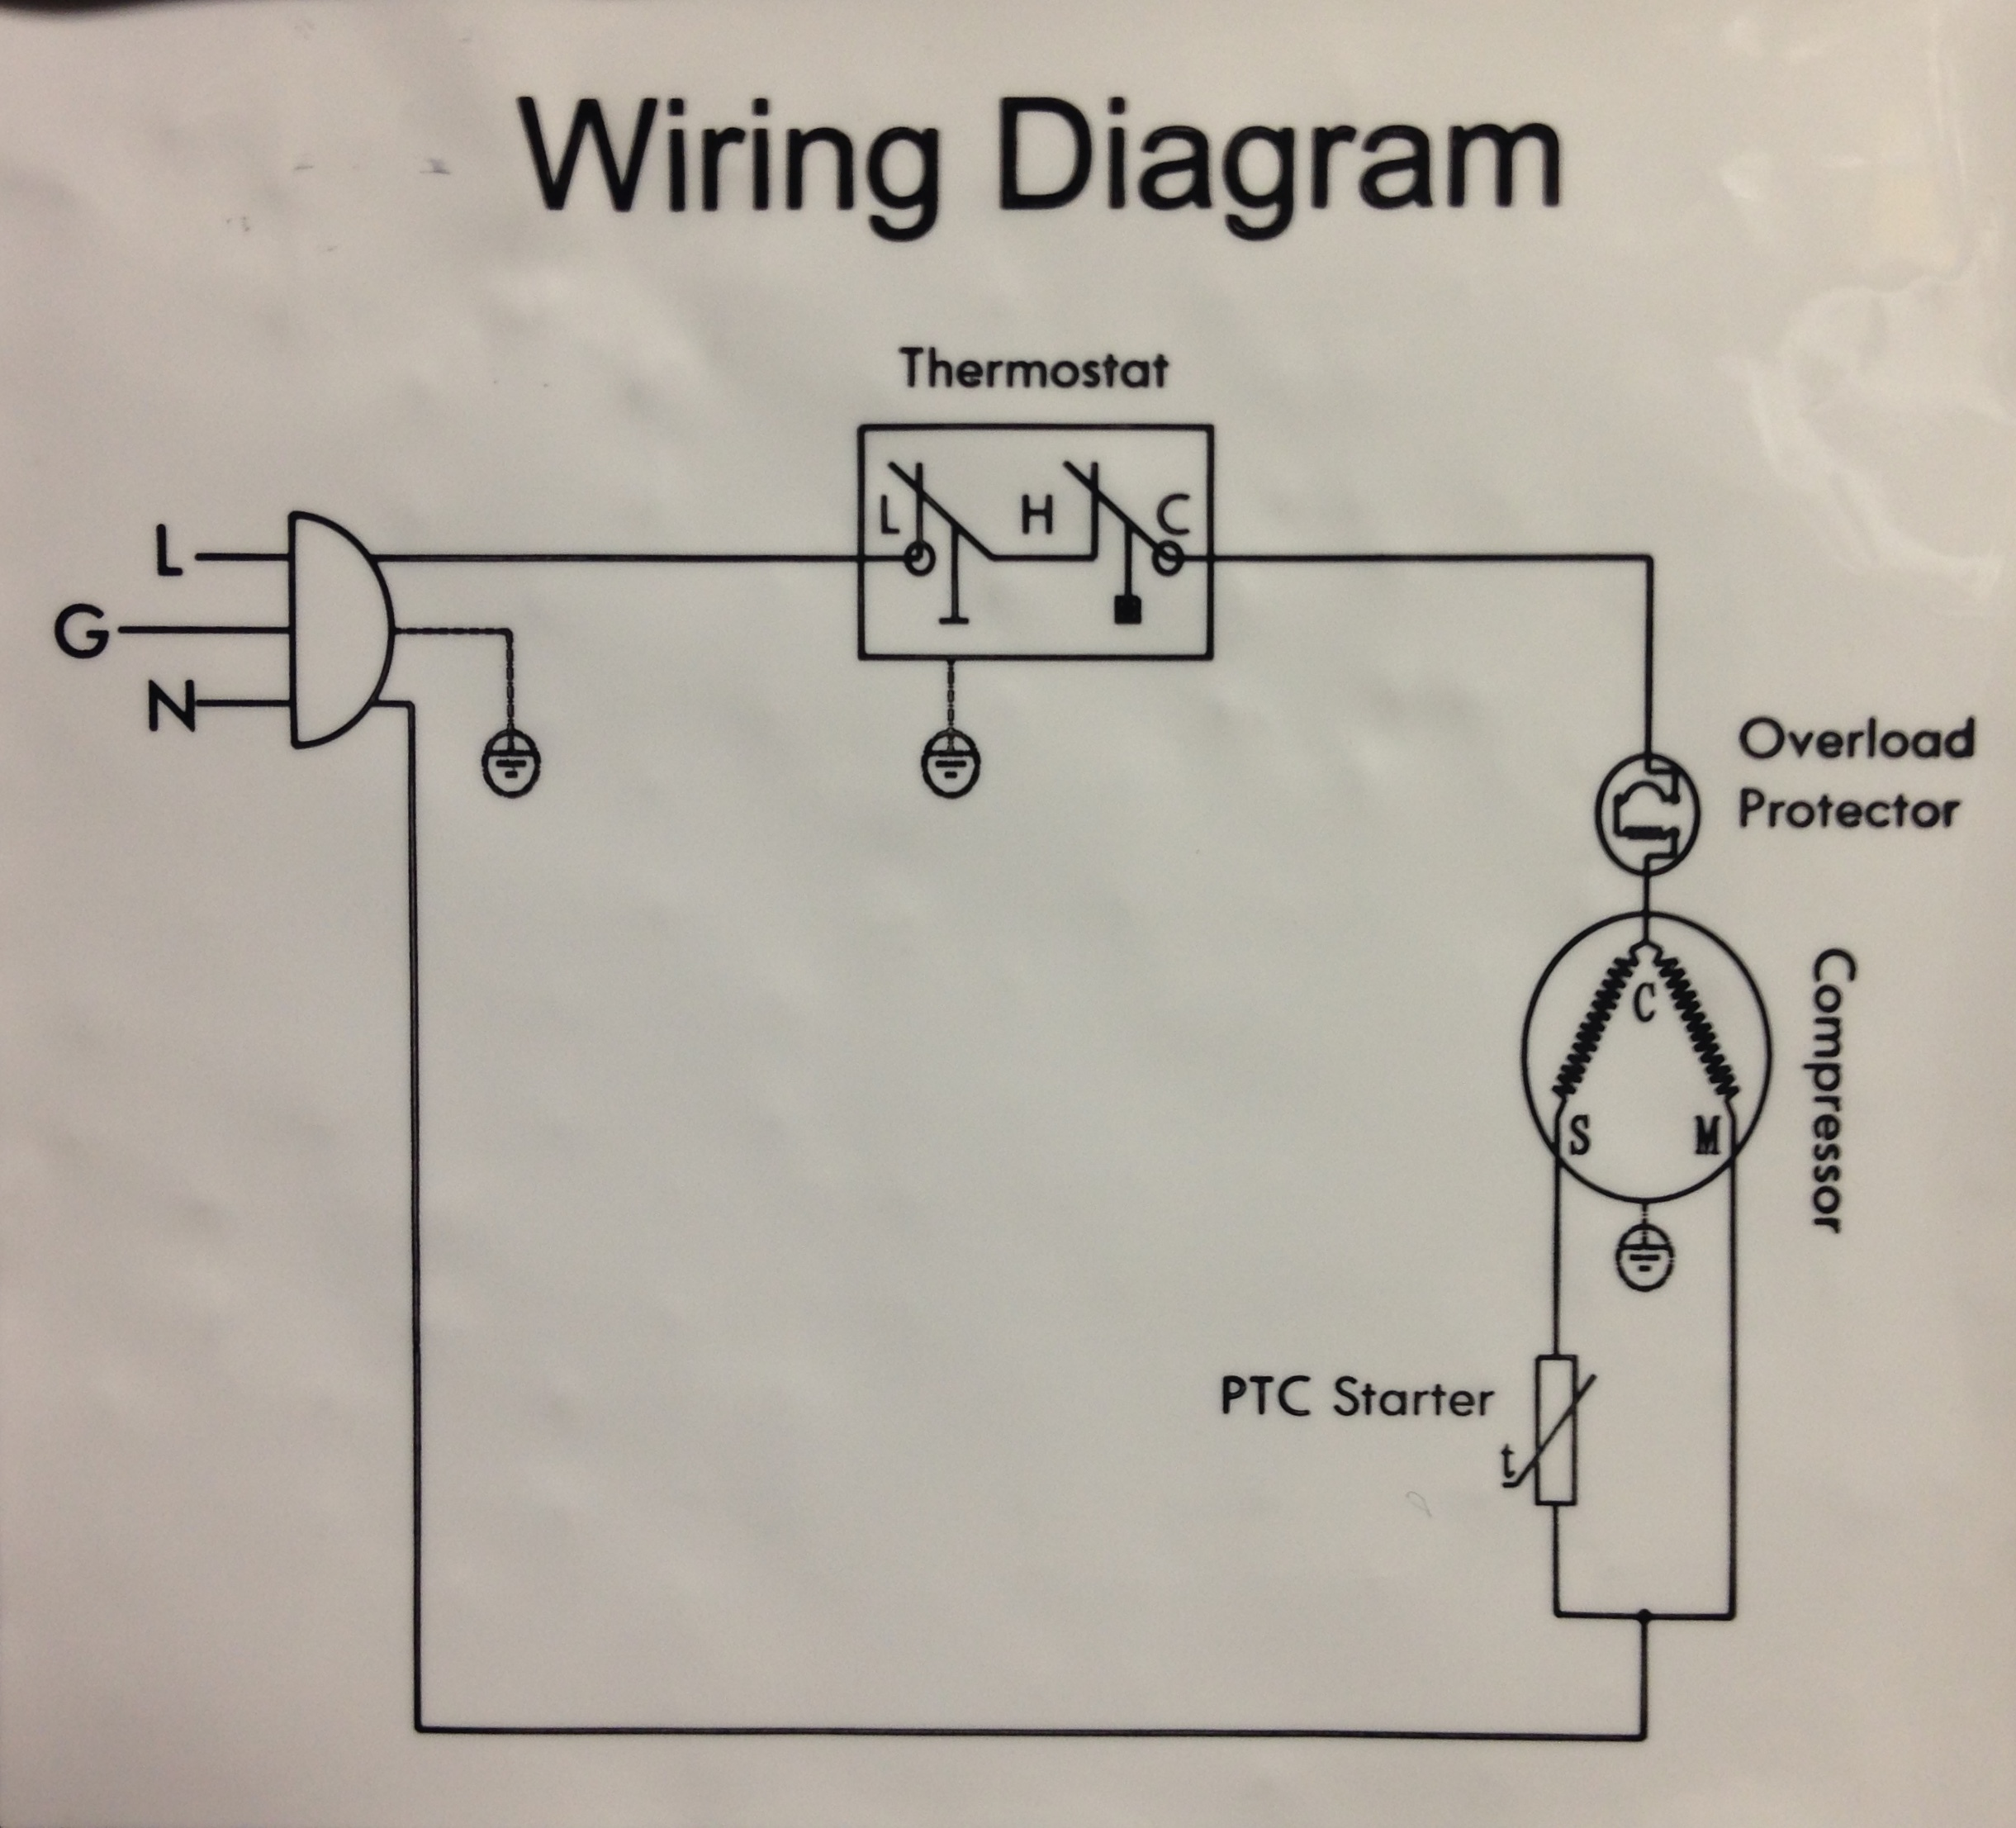 Wiring Diagram For Refrigerator Thermostat - Wiring Diagrams ... on